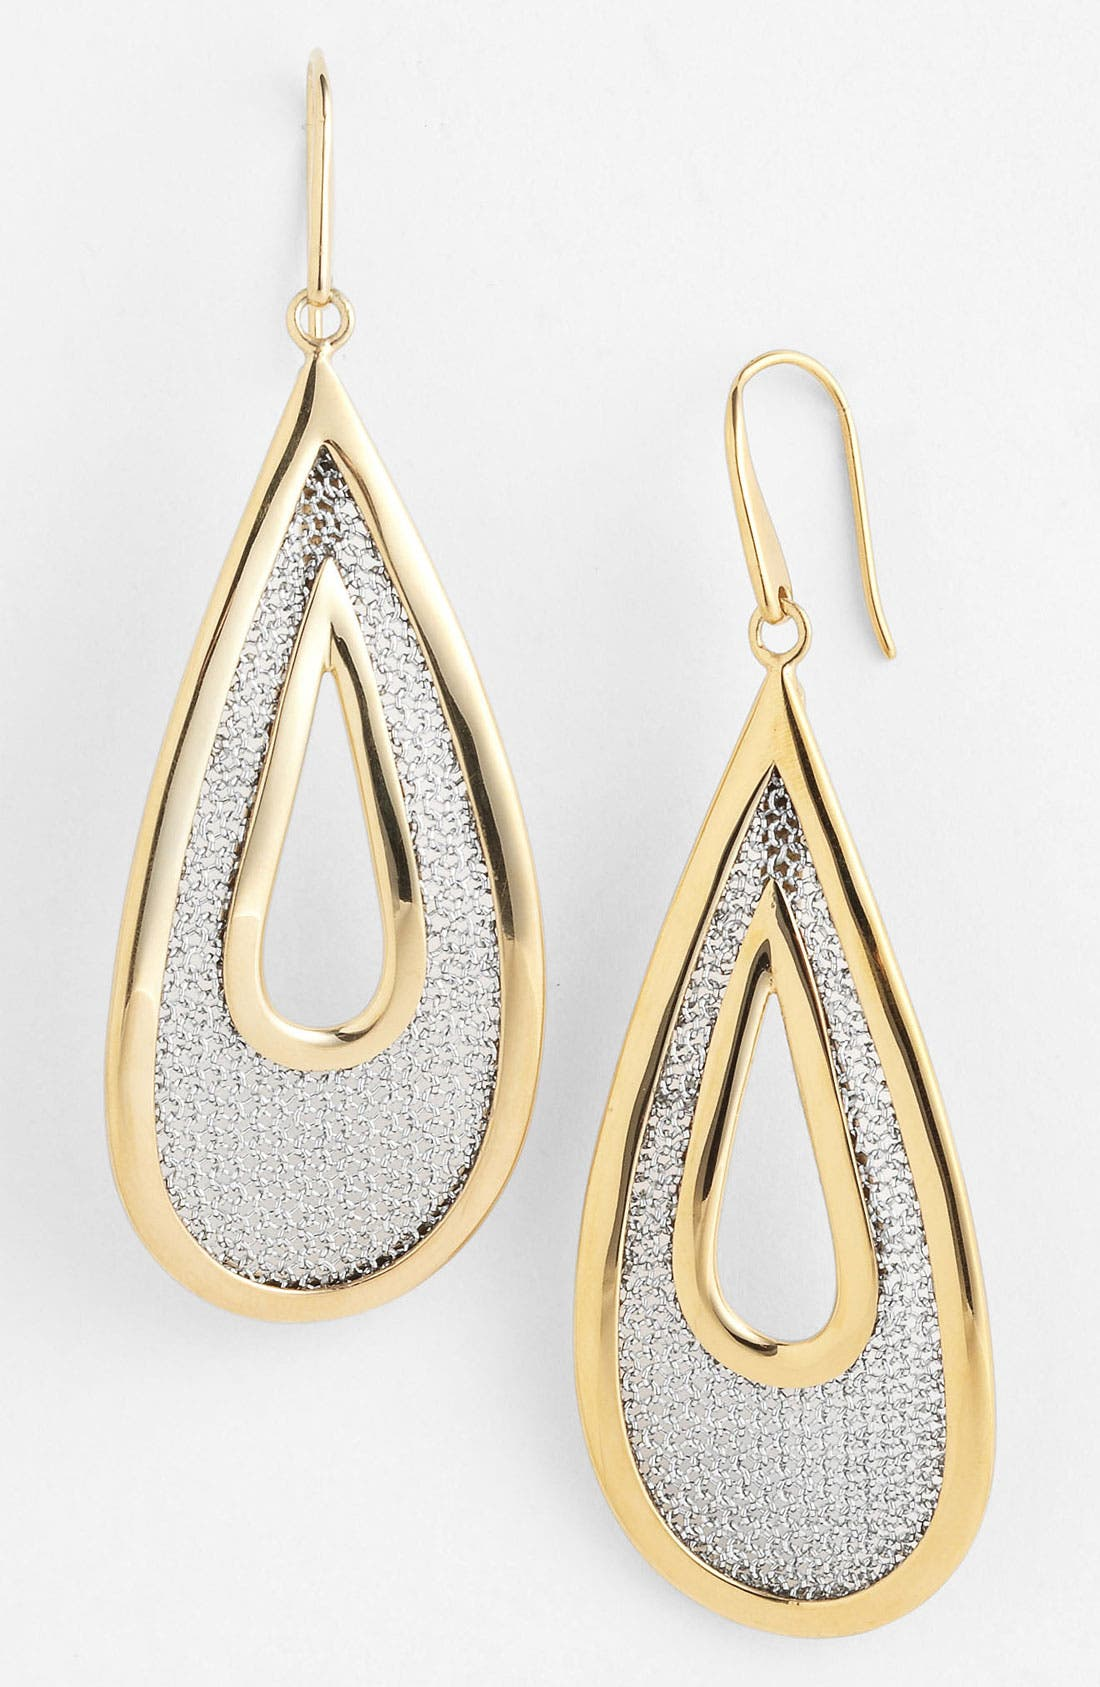 Main Image - Adami & Martucci 'Mesh' Large Open Teardrop Earrings (Nordstrom Exclusive)